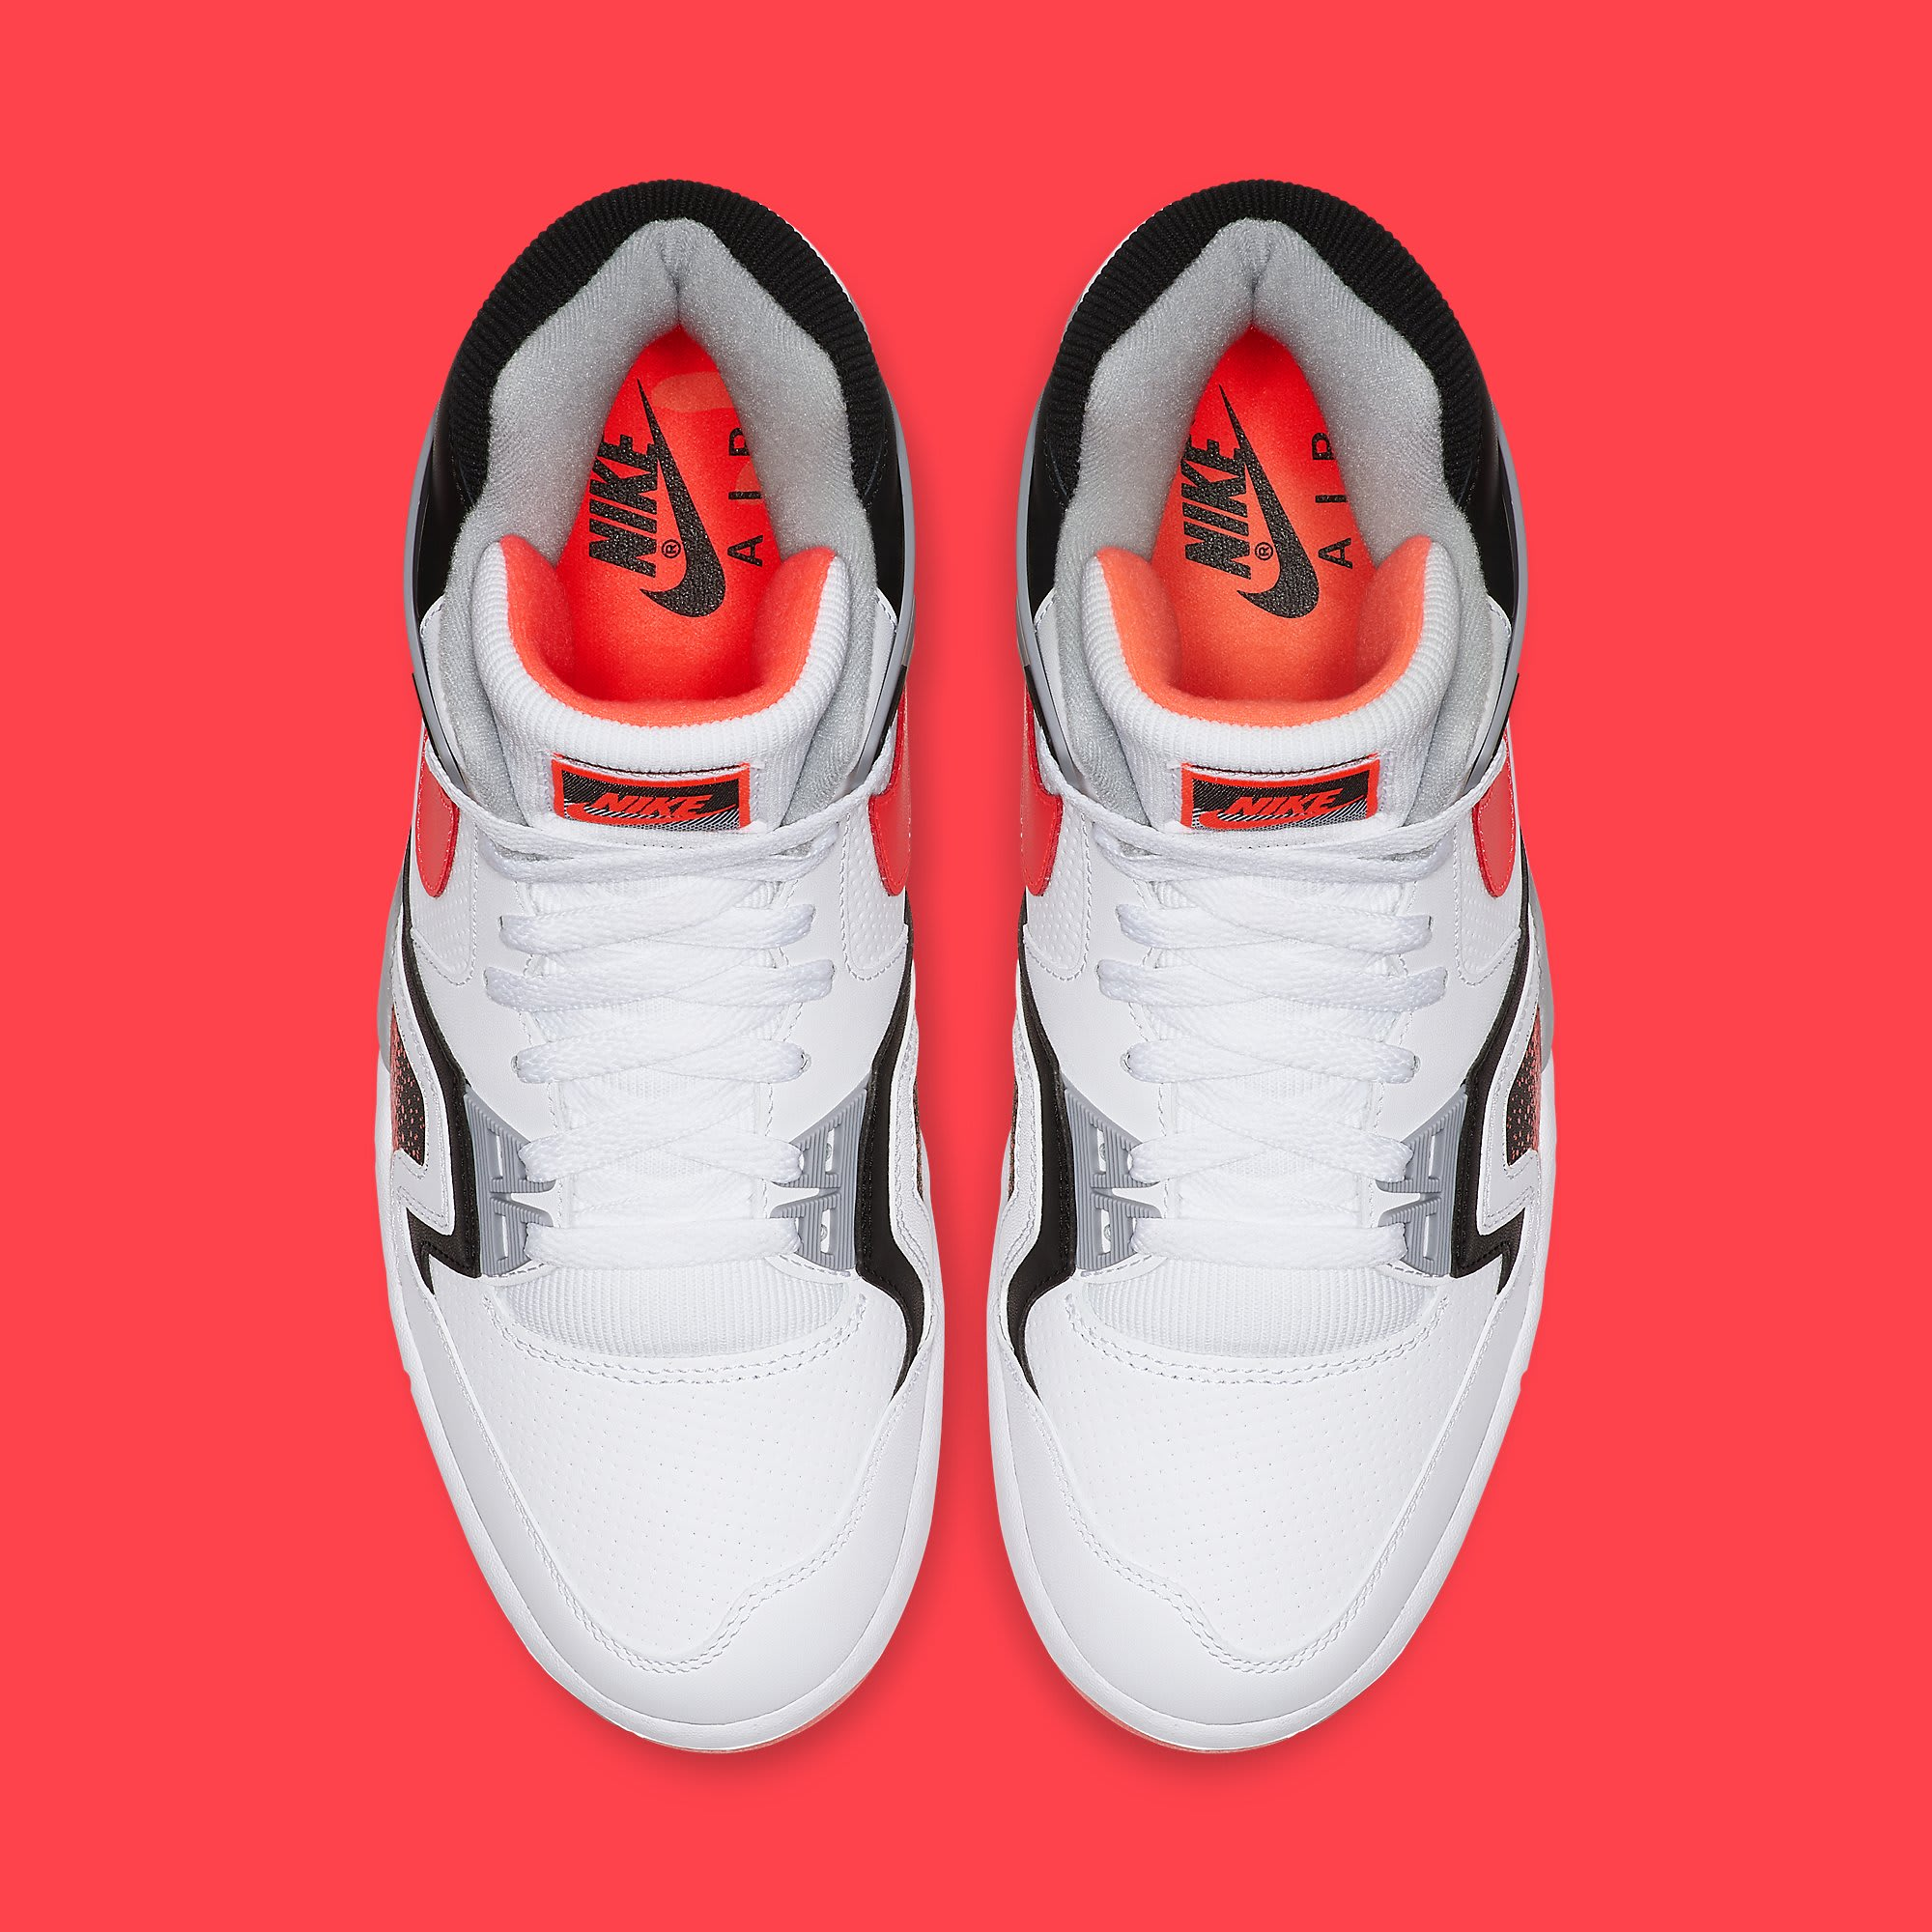 Nike Air Tech Challenge 2 'Hot Lava' CJ1437-100 (Top)